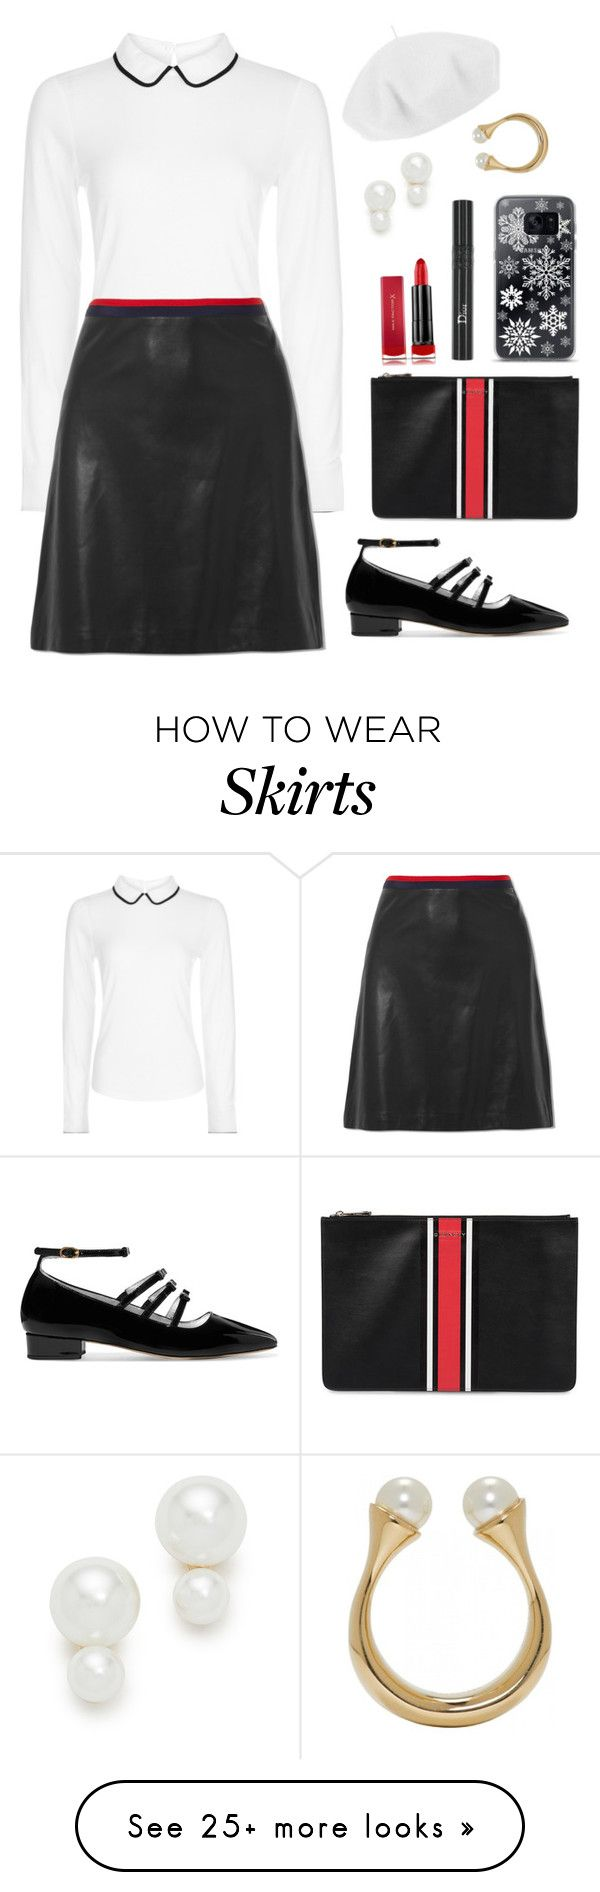 """Untitled #2450"" by ebramos on Polyvore featuring Hobbs, Gucci, Betmar, Kate Spade, AlexaChung, Givenchy, Max Factor, Christian Dior, Samsung and Chloé"